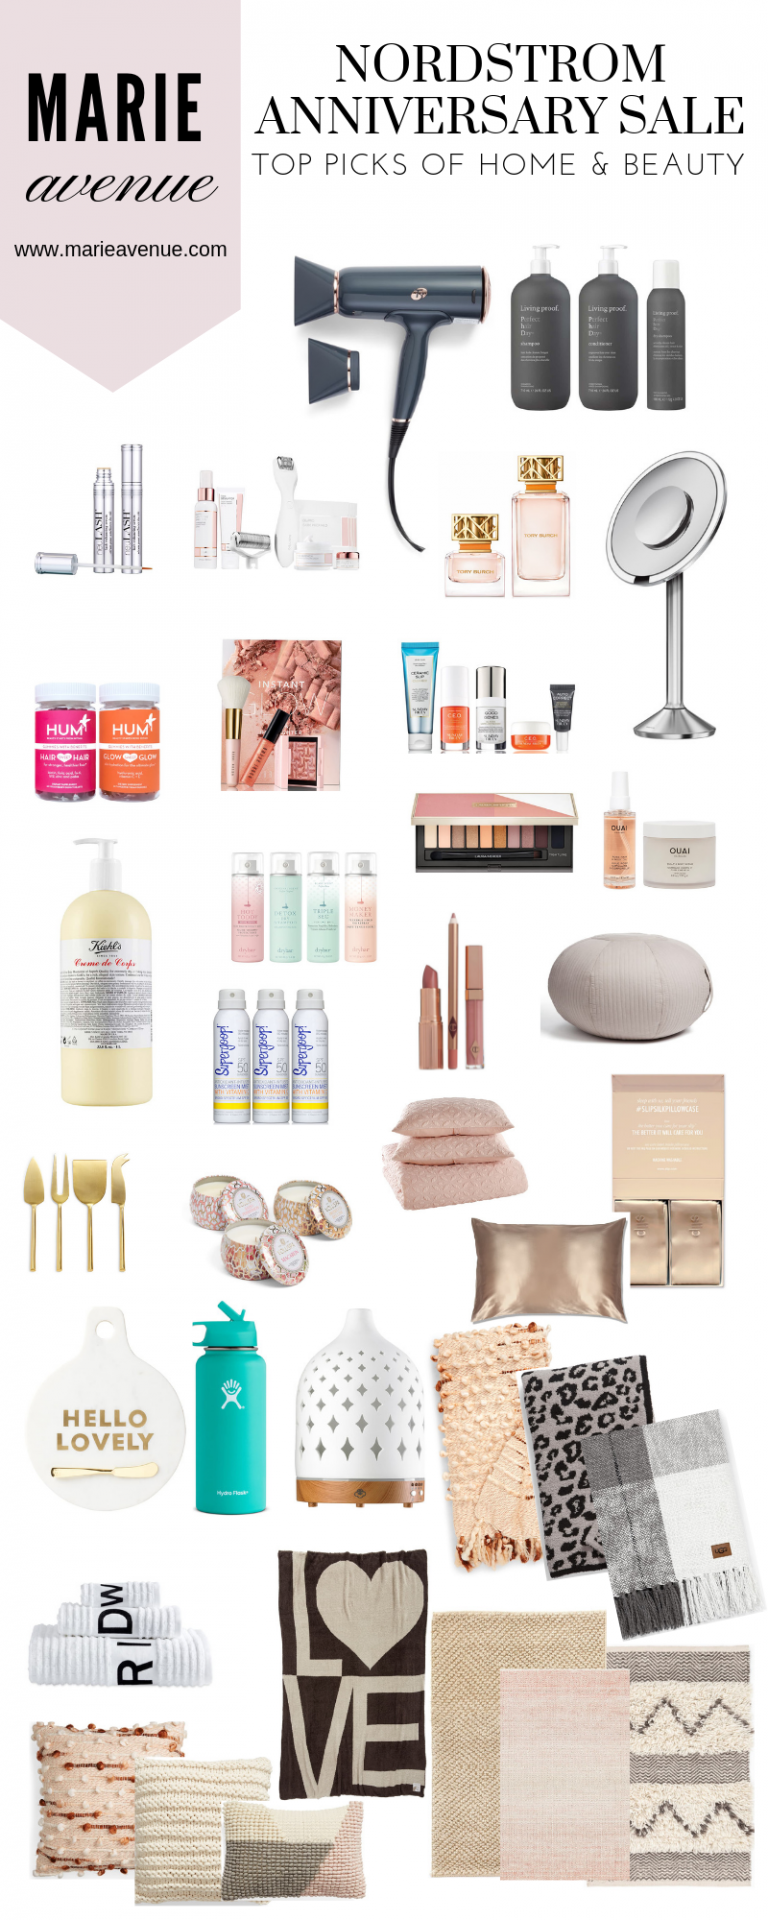 NORDSTROM ANNIVERSARY SALE // HOME & BEAUTY